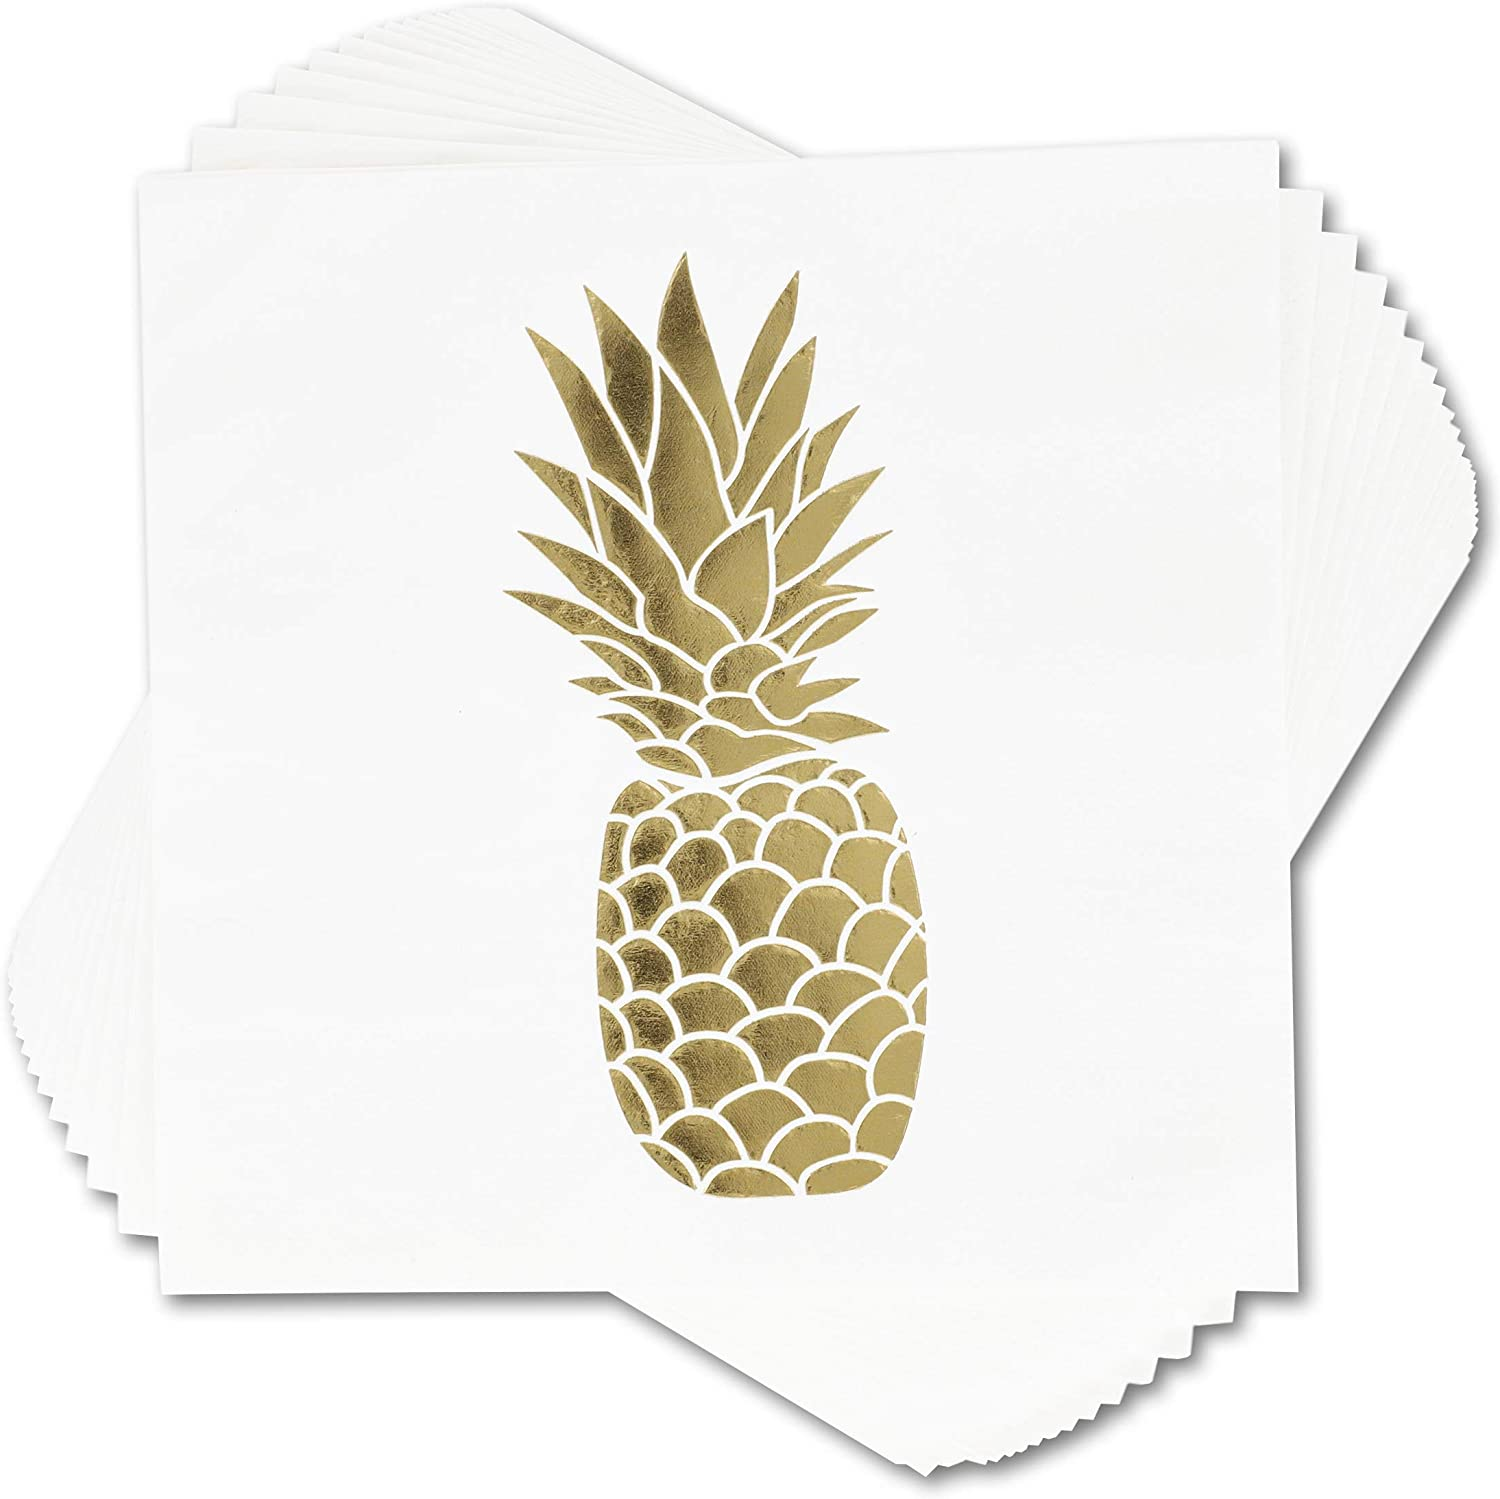 Gold Foil Pineapple Paper Napkins for Birthday Party (6.5 x 6.5 In, 50 Pack)